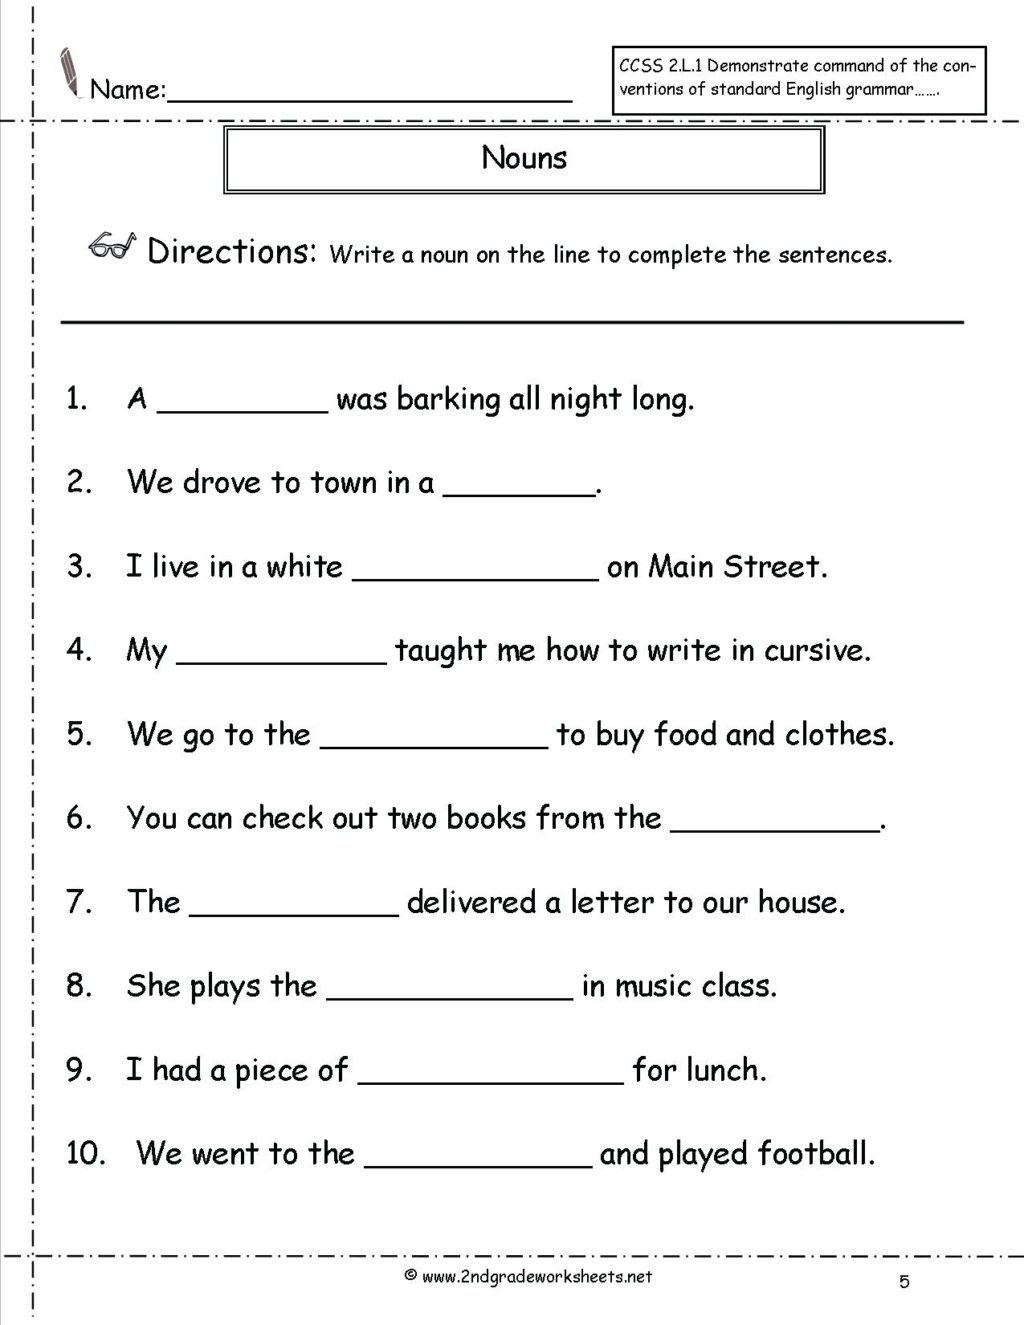 Possessive Pronoun Worksheet 3rd Grade Worksheet Free Printable Second Grade Reading